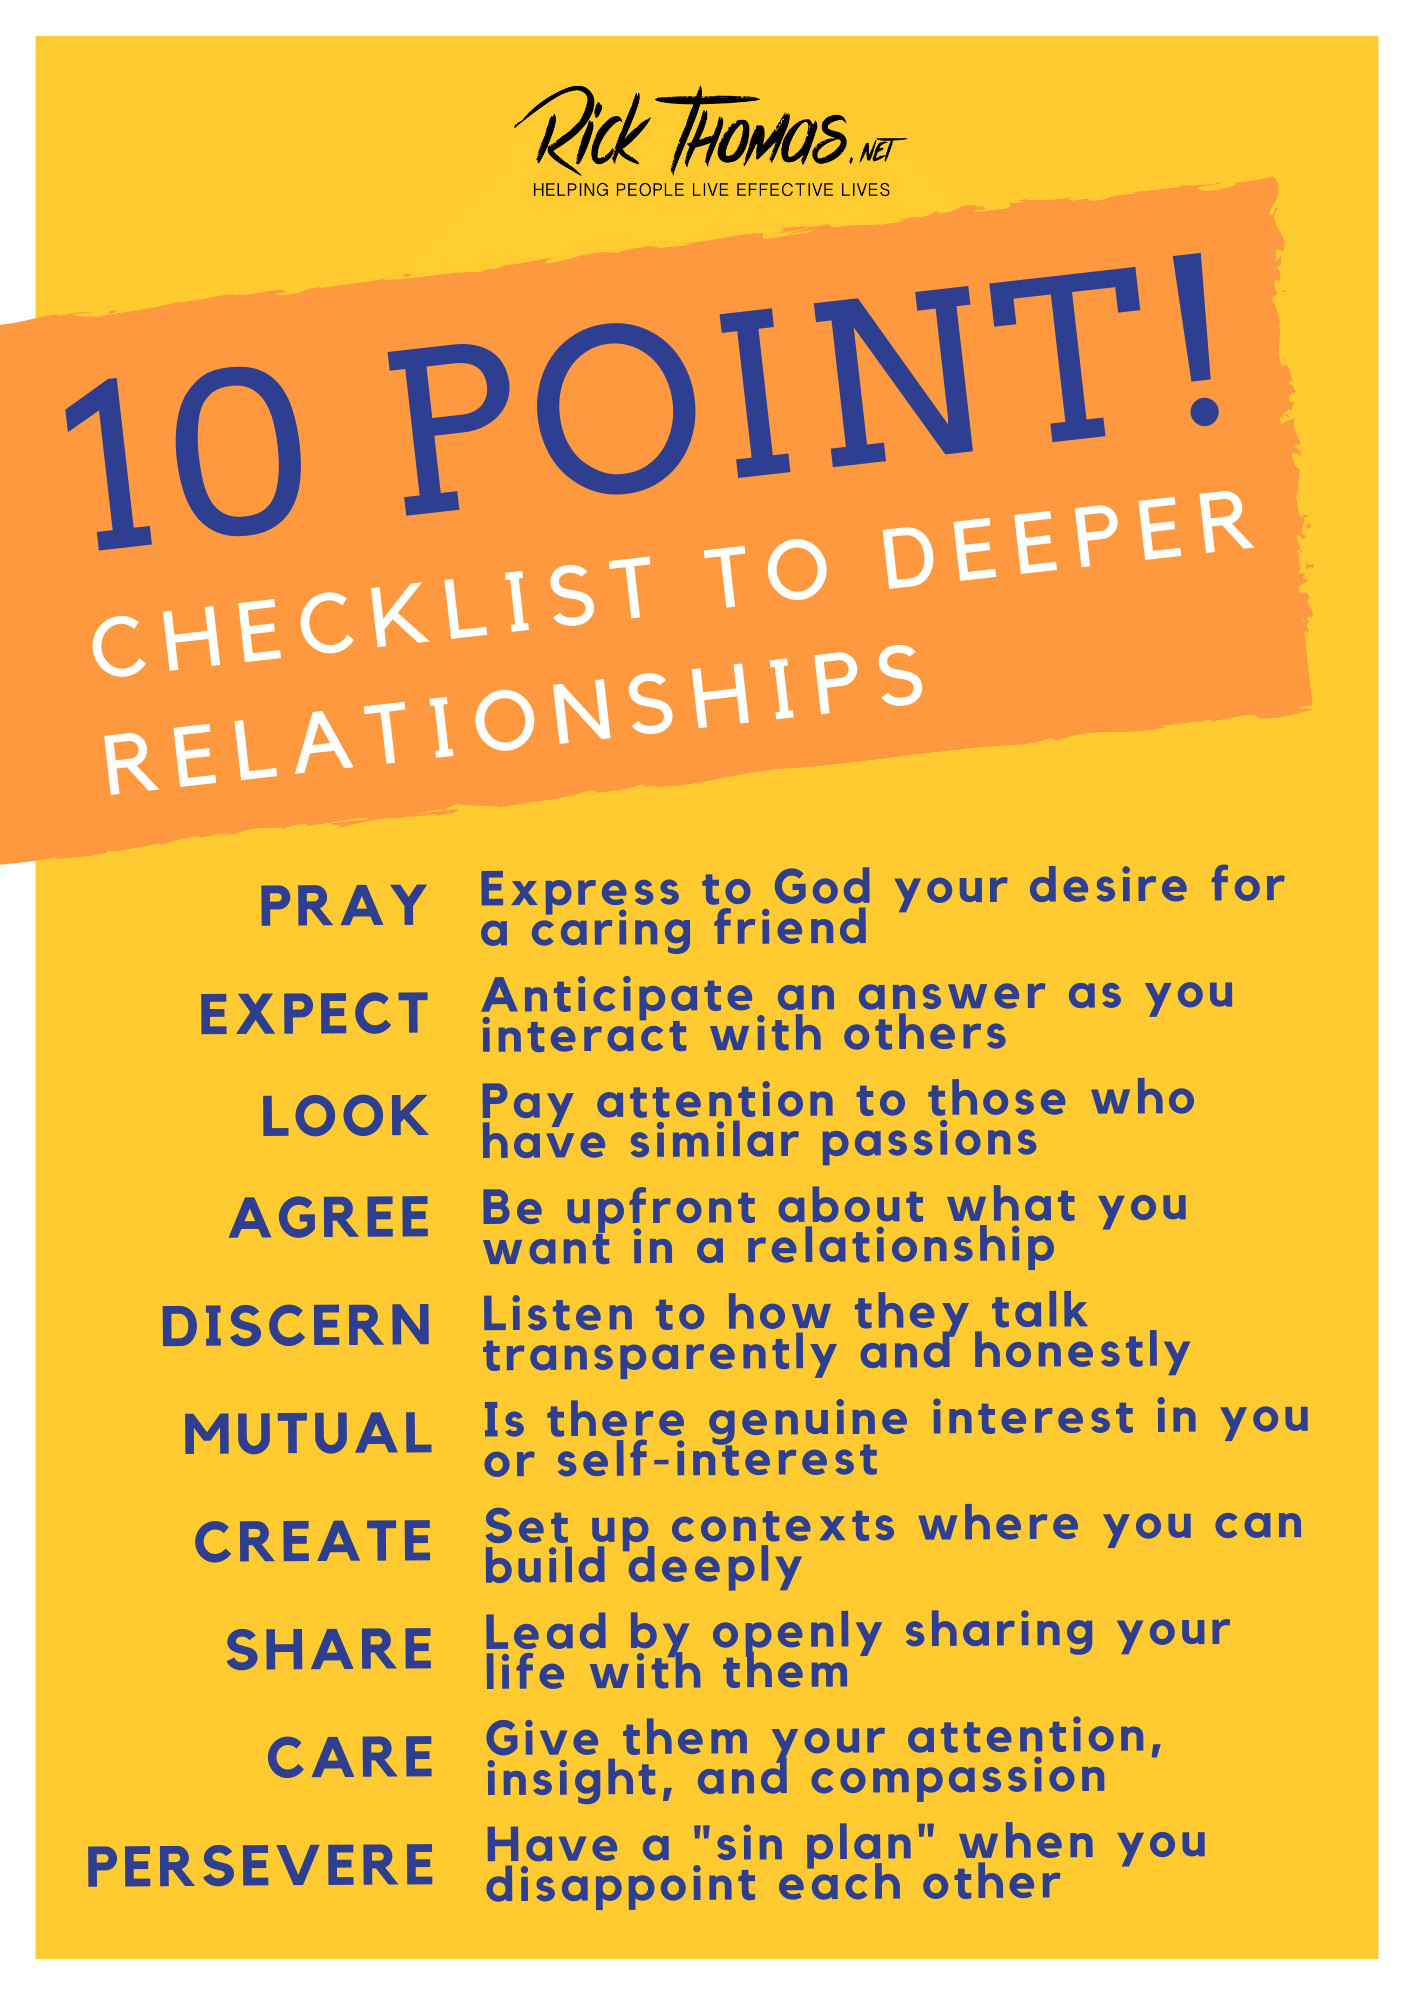 10-Point Checklist for Deeper Relationships